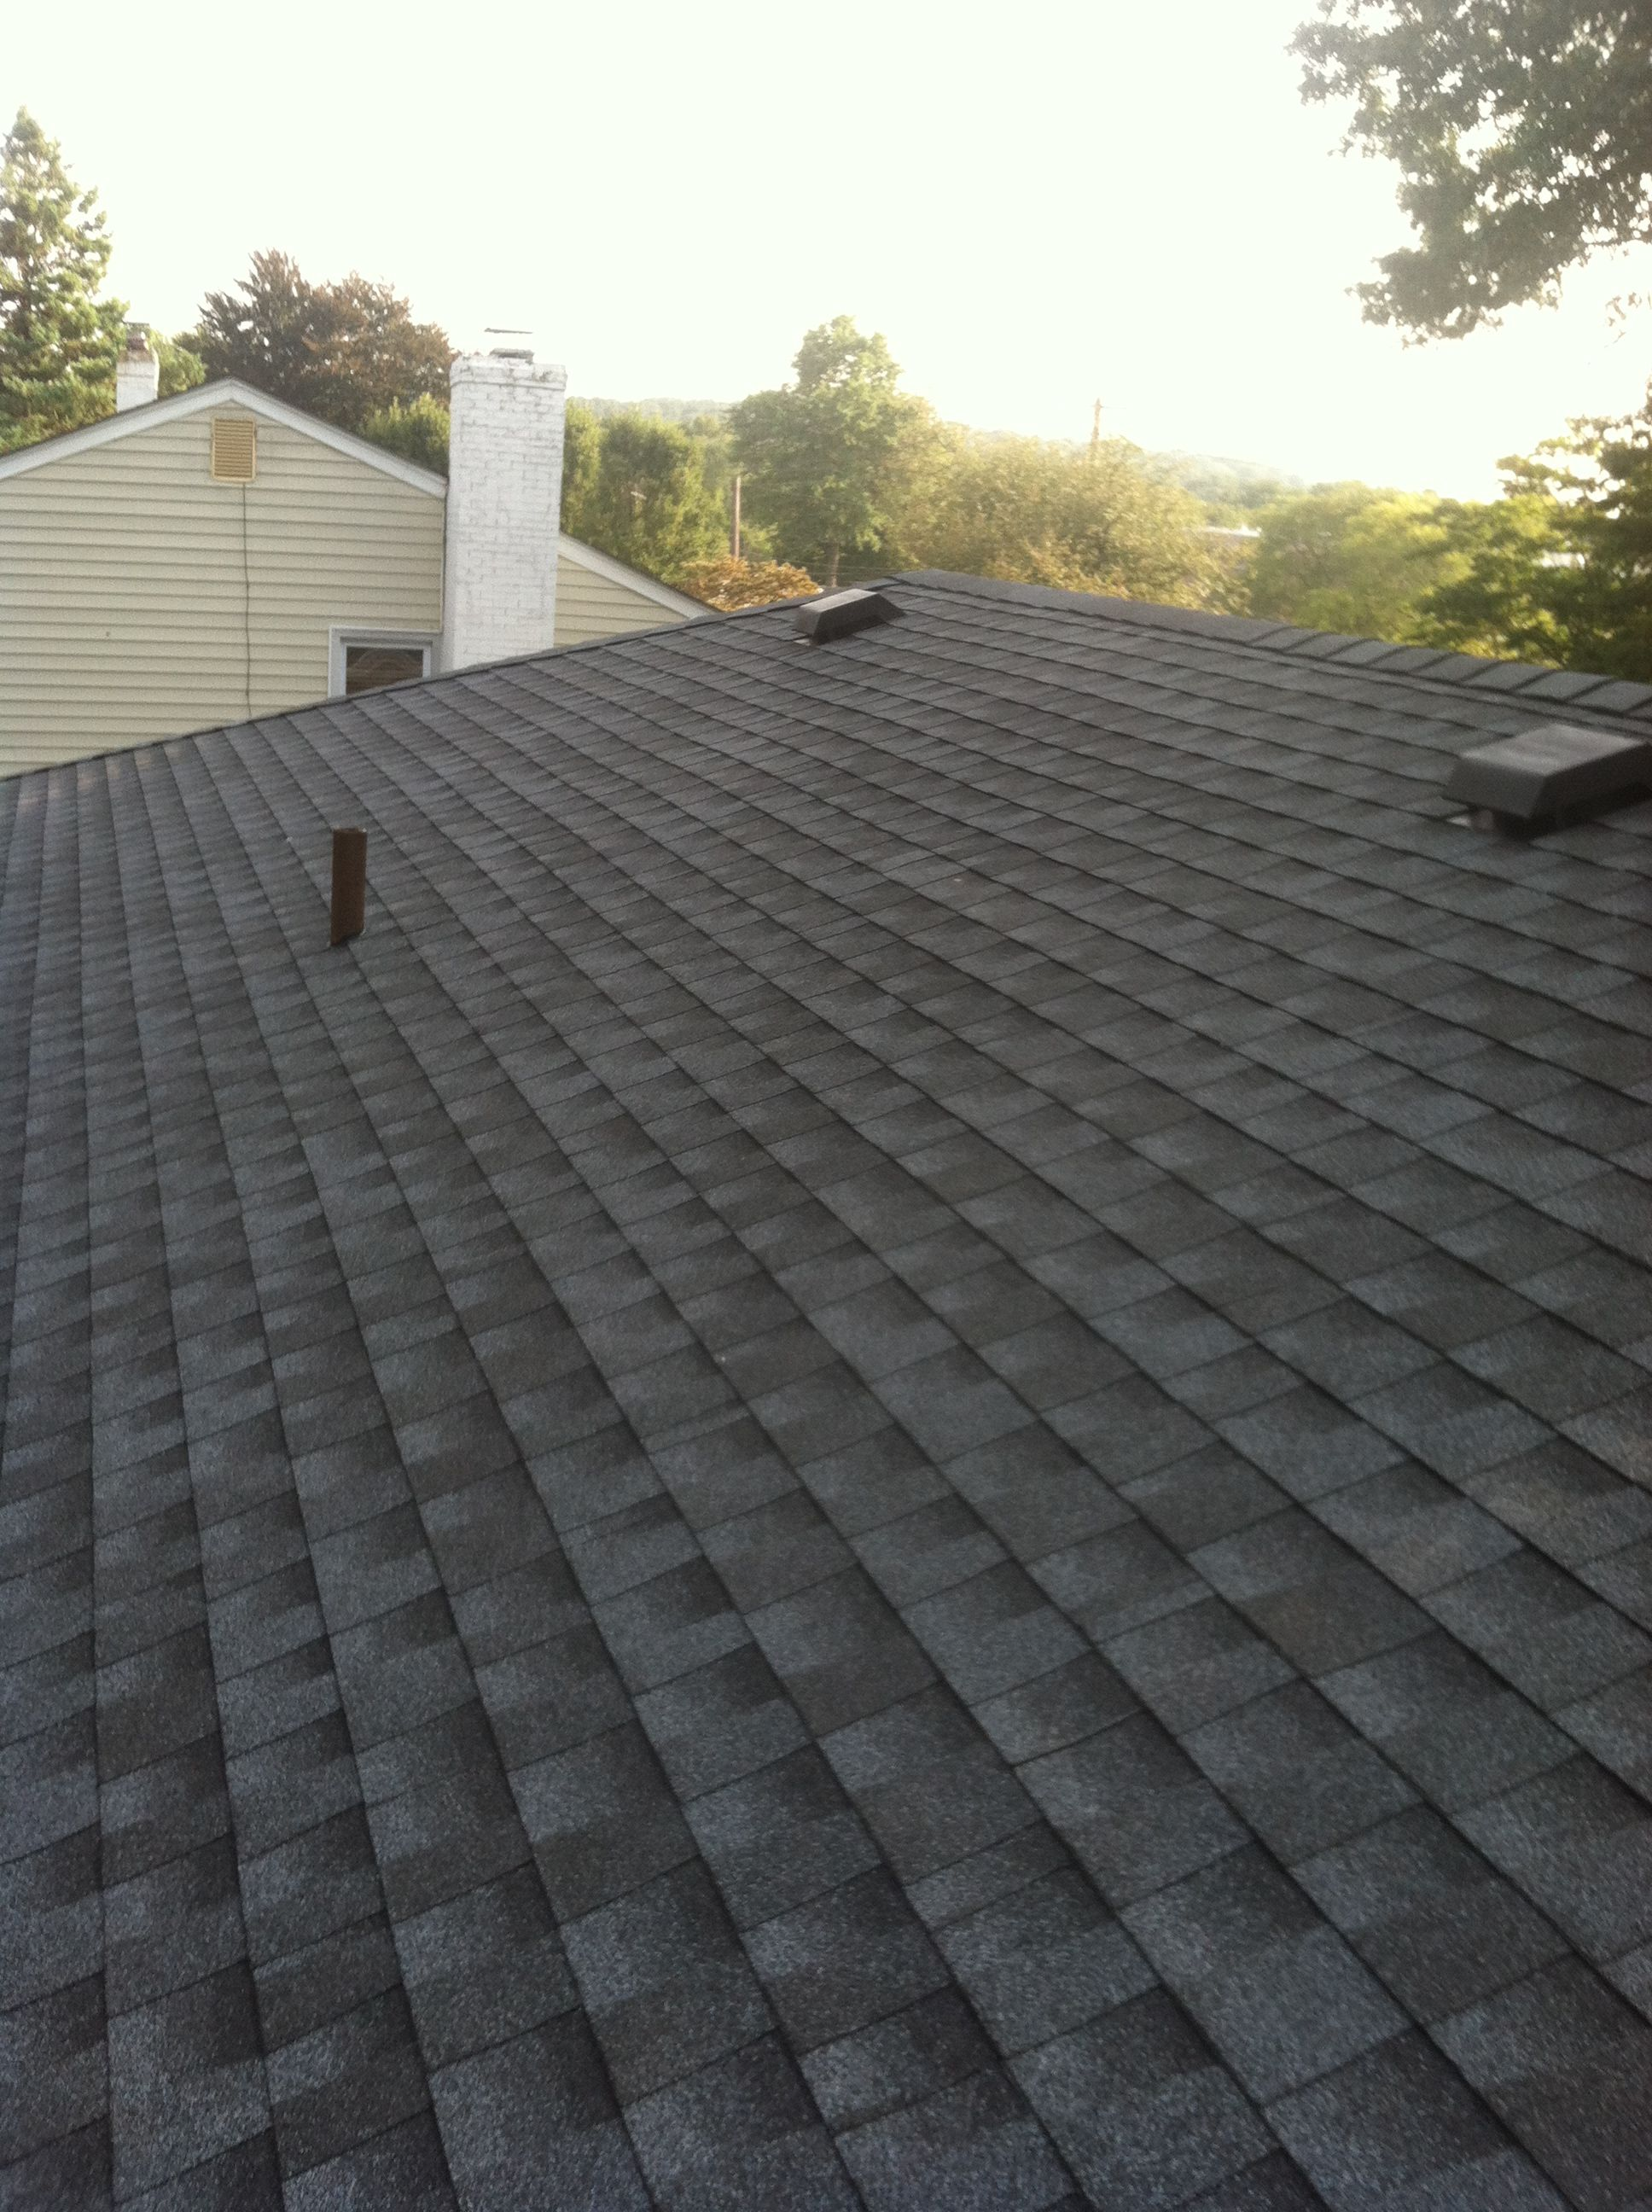 Gaf 30 Yr Timberline Installed By Nill Contracting All Hand Nailed Www Nillcontracting Com Roof Leak Repair Roofing Roof